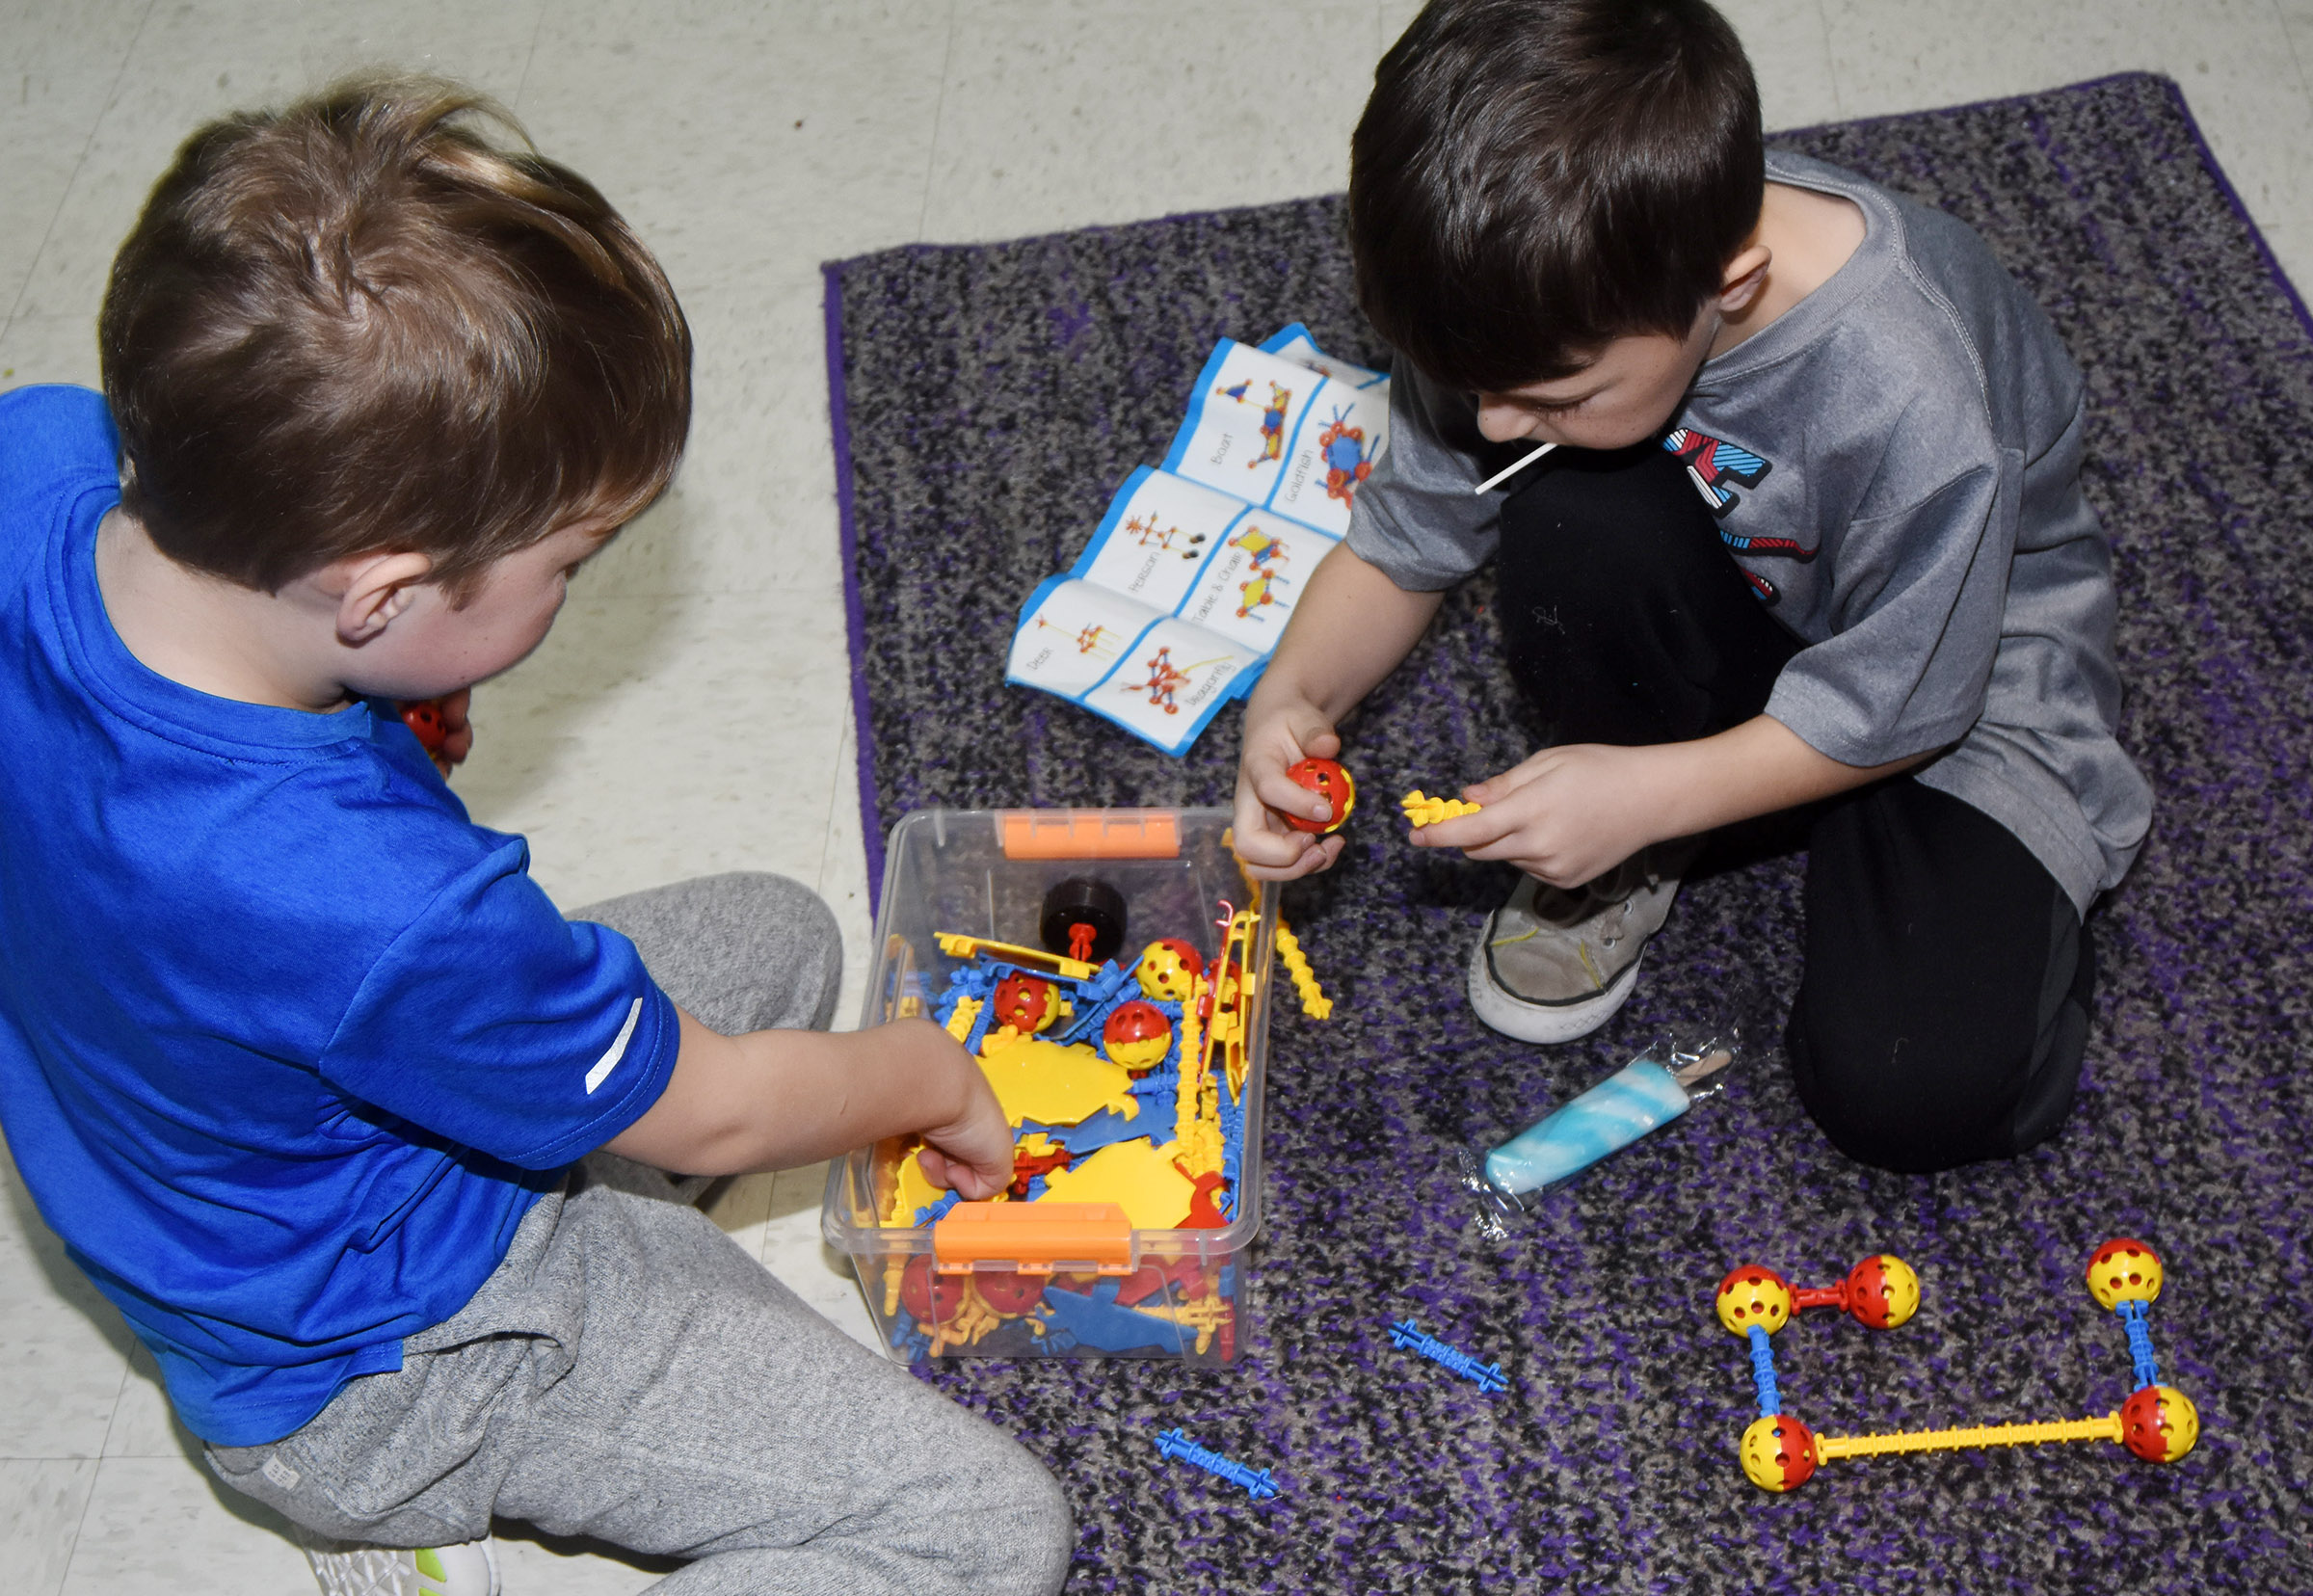 CES first-graders Landry Brown, at left, and Bentley Wilhoite build together.